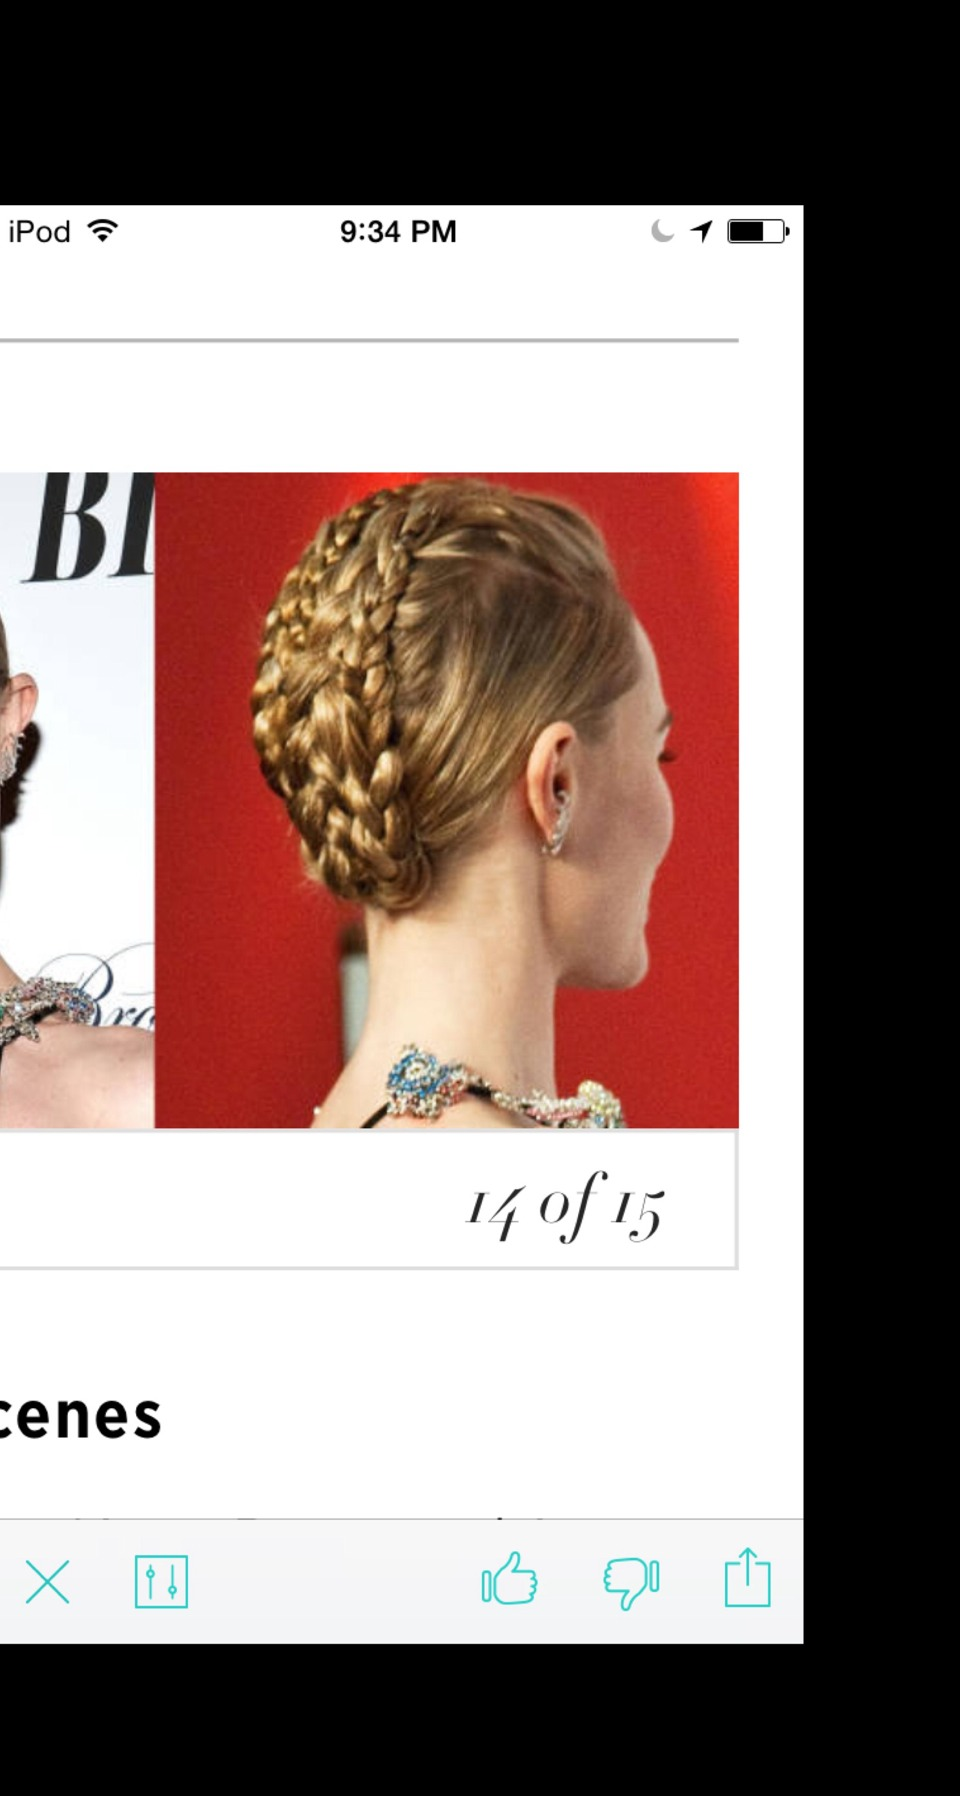 Behind the Scenes From the front, Kate Bosworth's simple, swept-back hairstyle lets all eyes focus on her bejeweled collar. But from the back, the jewels get some serious competition from an equally-as-intricate braided updo.